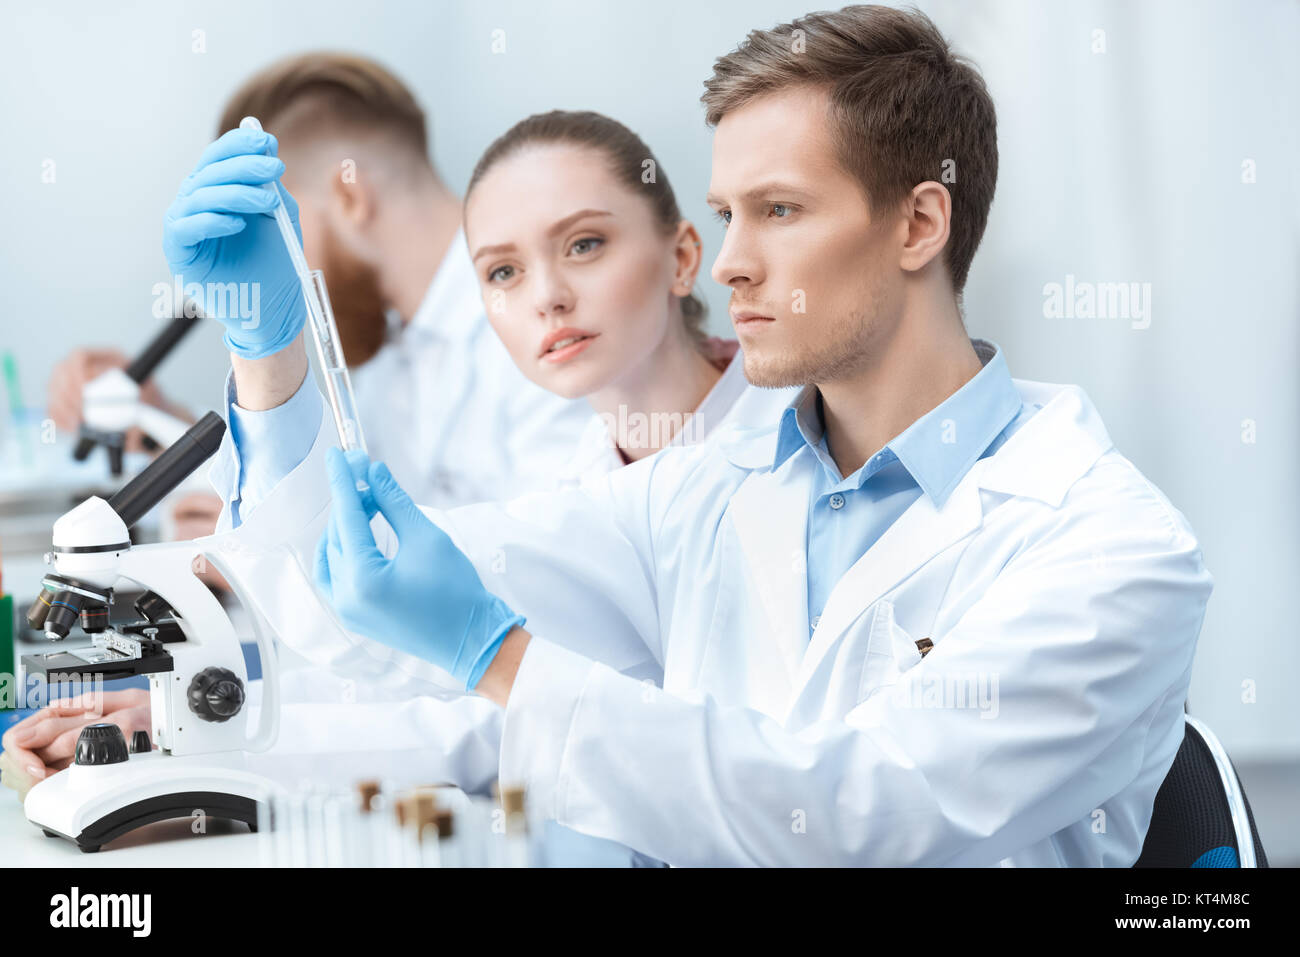 Young man and woman chemists looking at test tube in laboratory - Stock Image